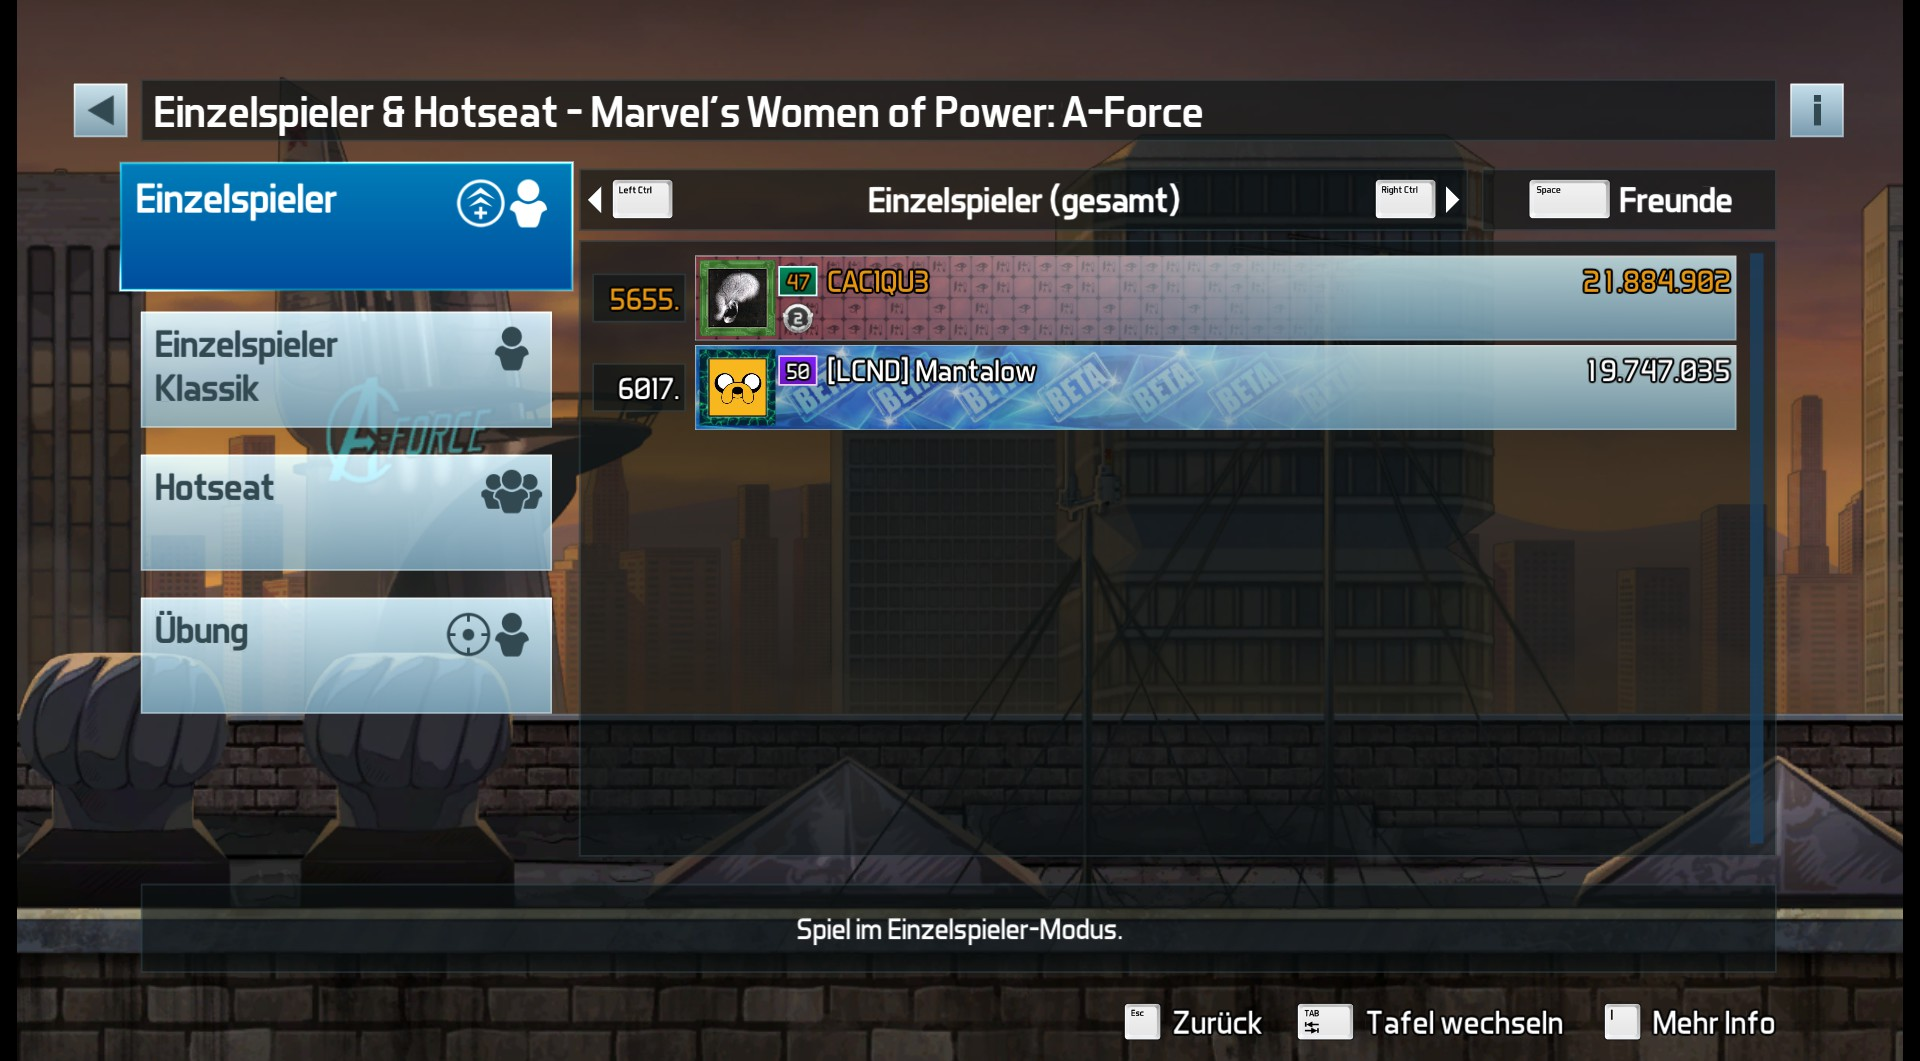 Pinball FX3: Marvel's Women of Power: A-Force 21,884,902 points